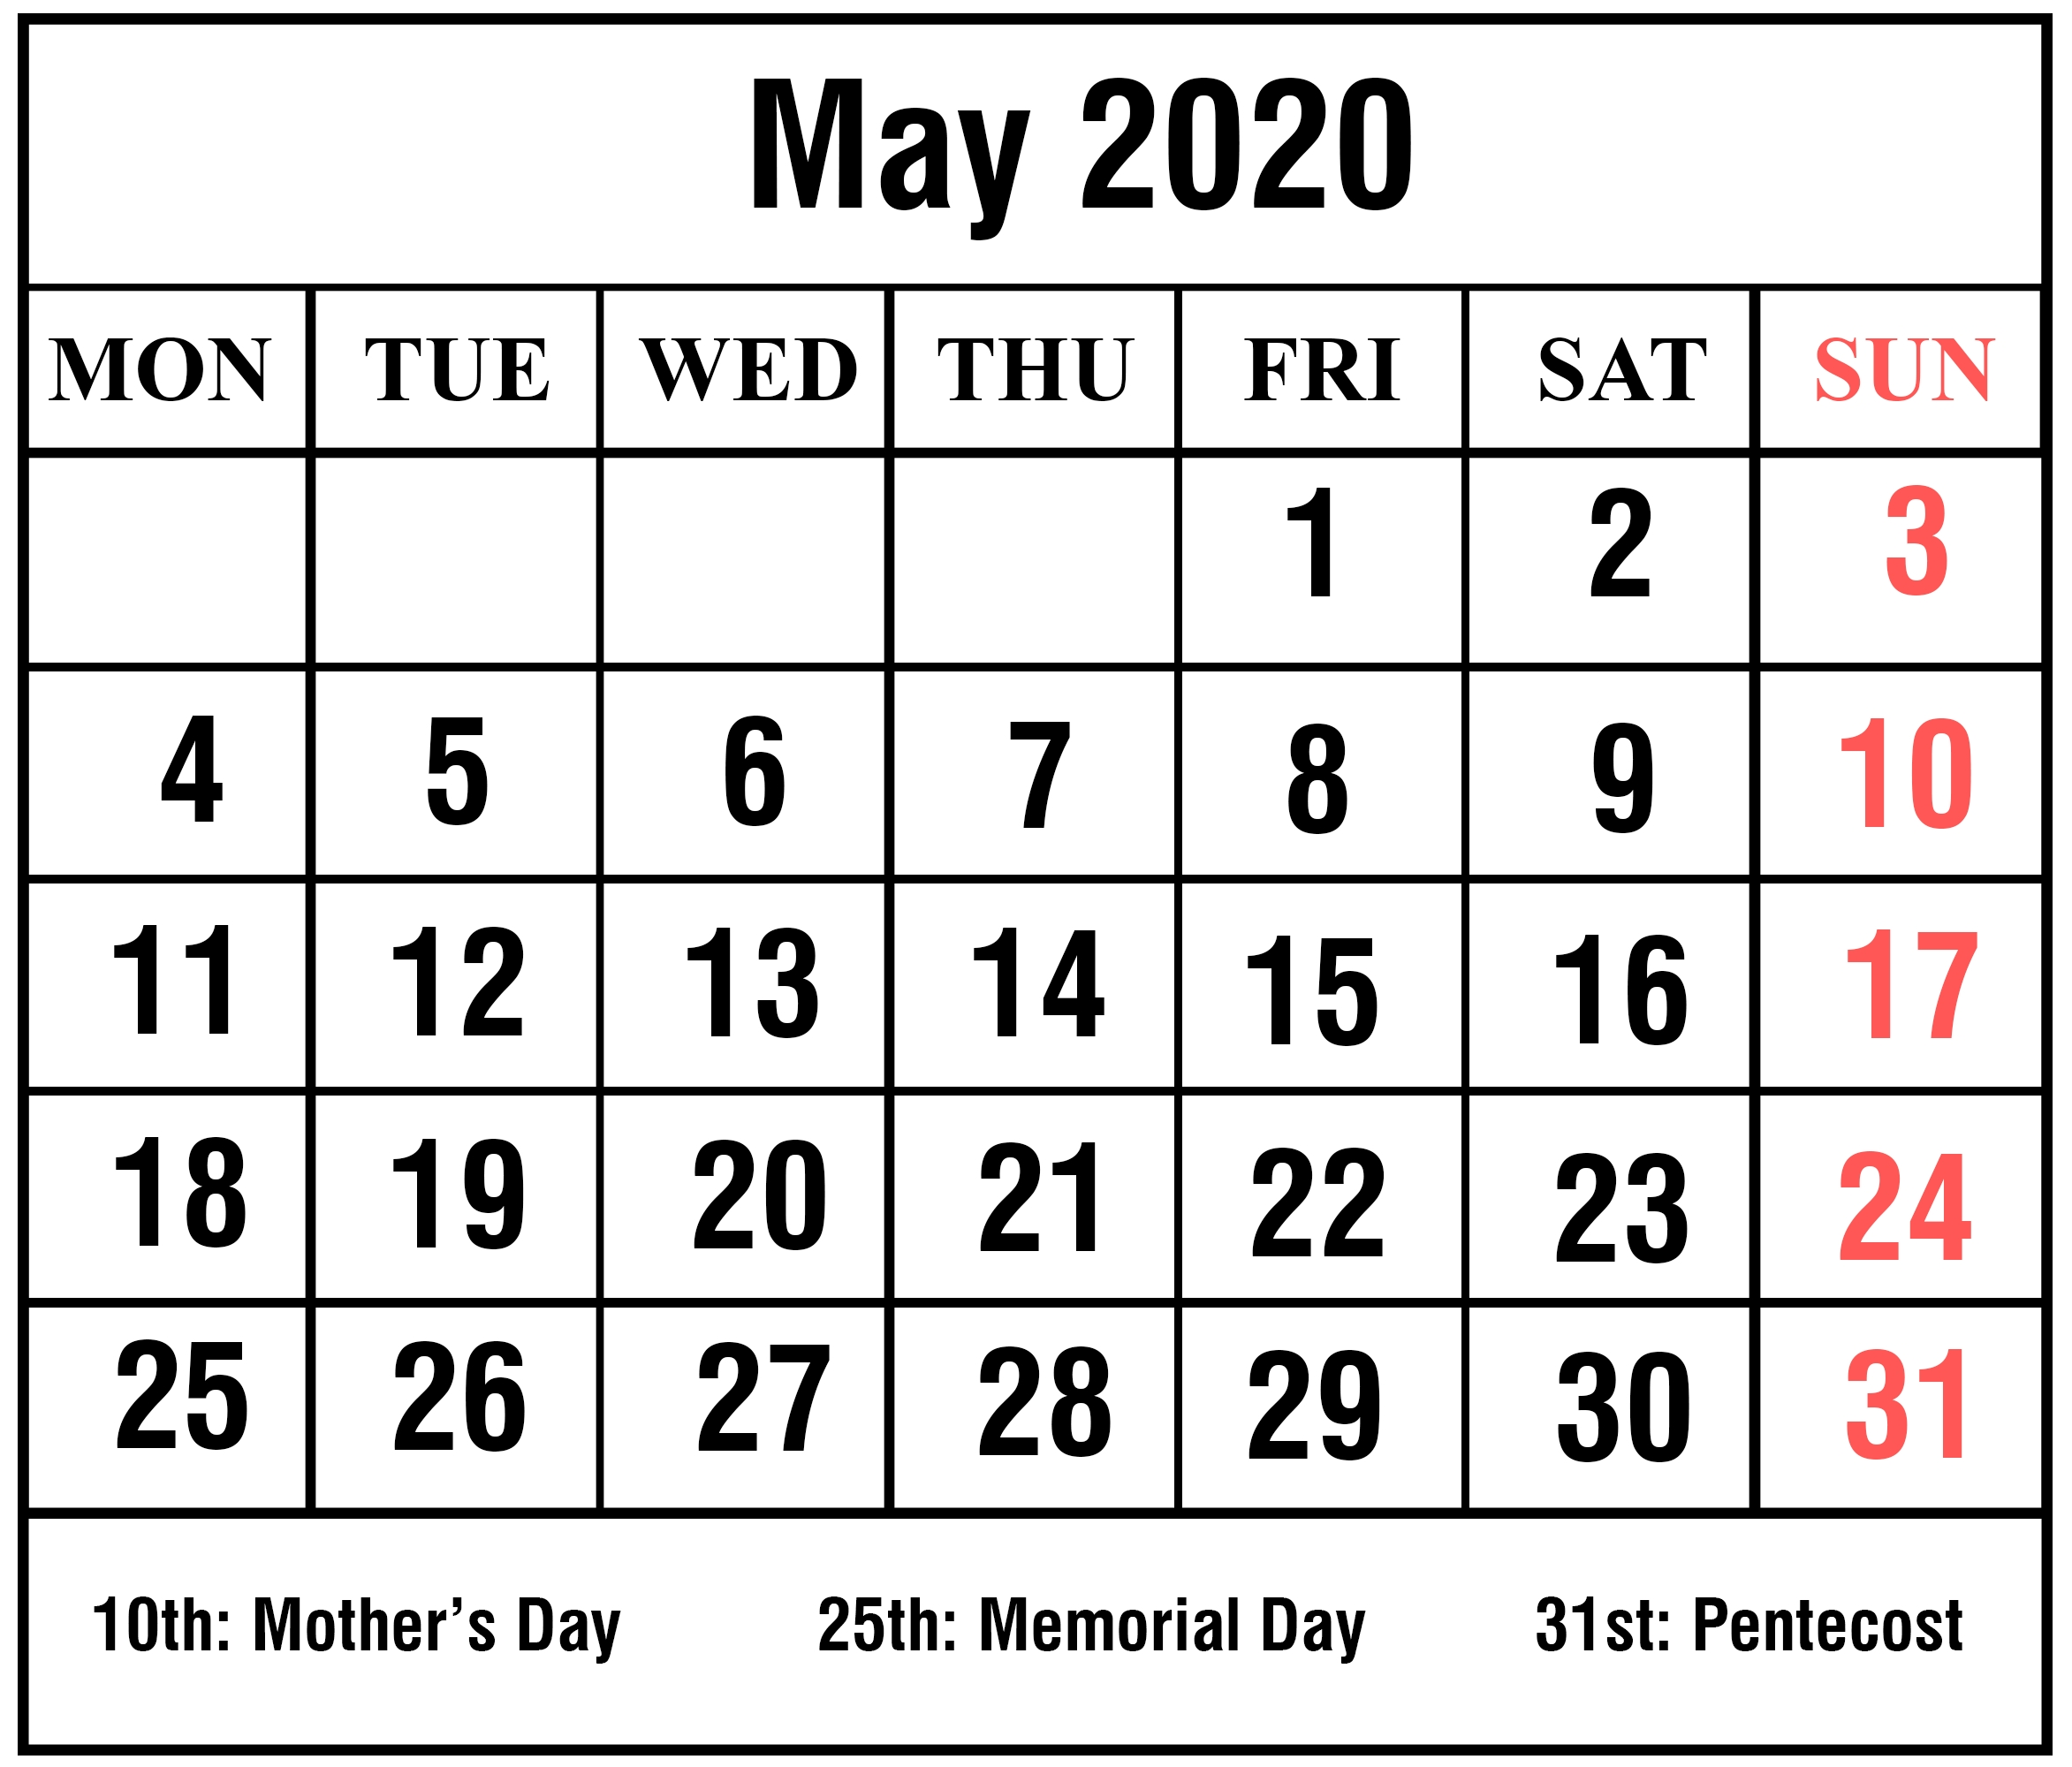 Free Printable May 2020 Calendar Template With Notes (With